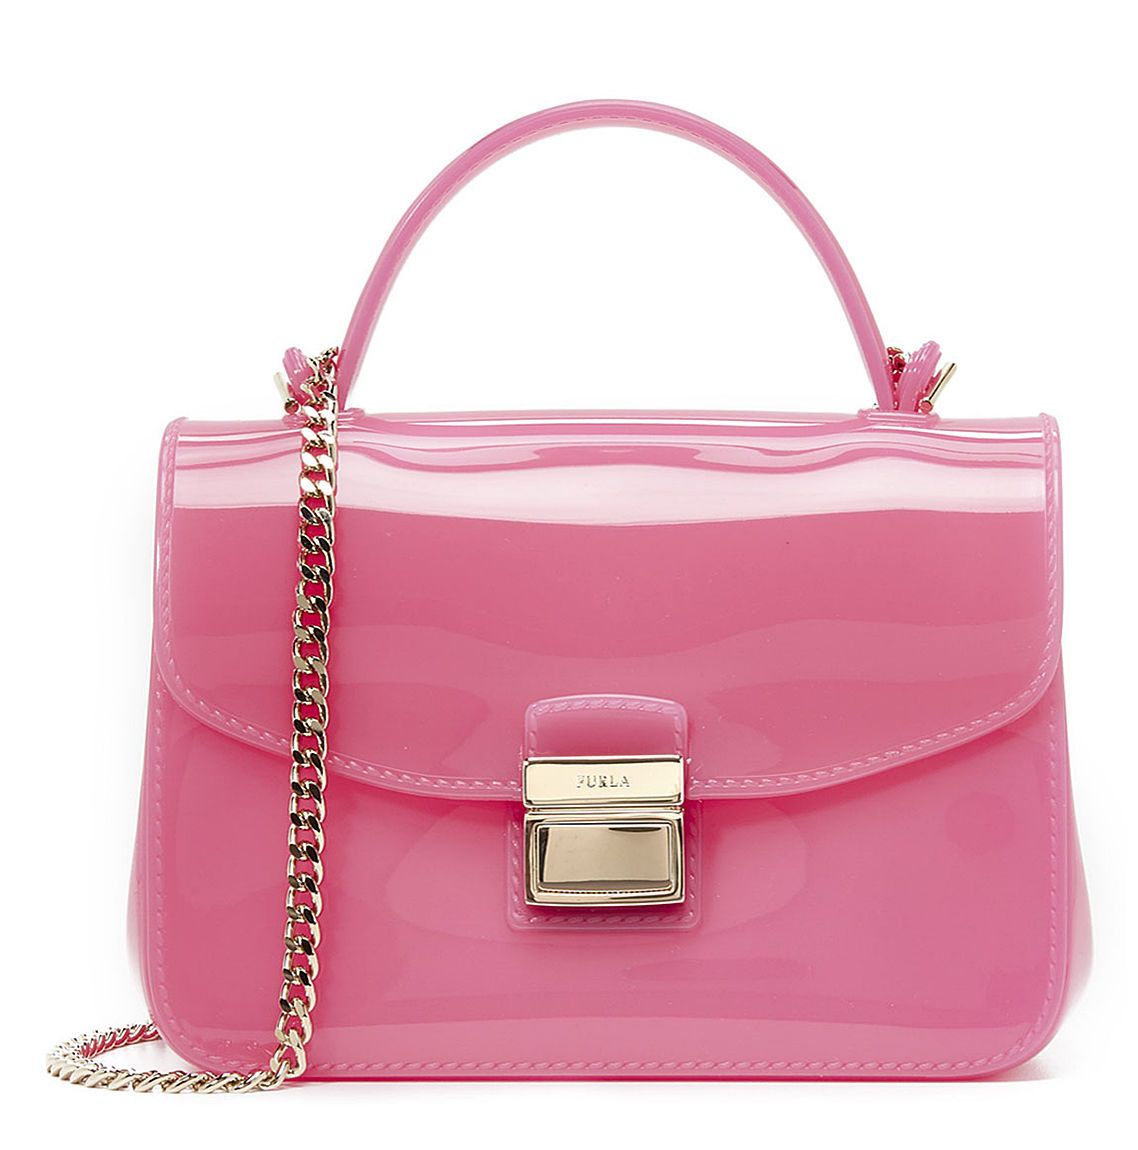 online here wholesale special sales NWT Furla Candy Sugar Rhodonite PVC Mini and 50 similar items